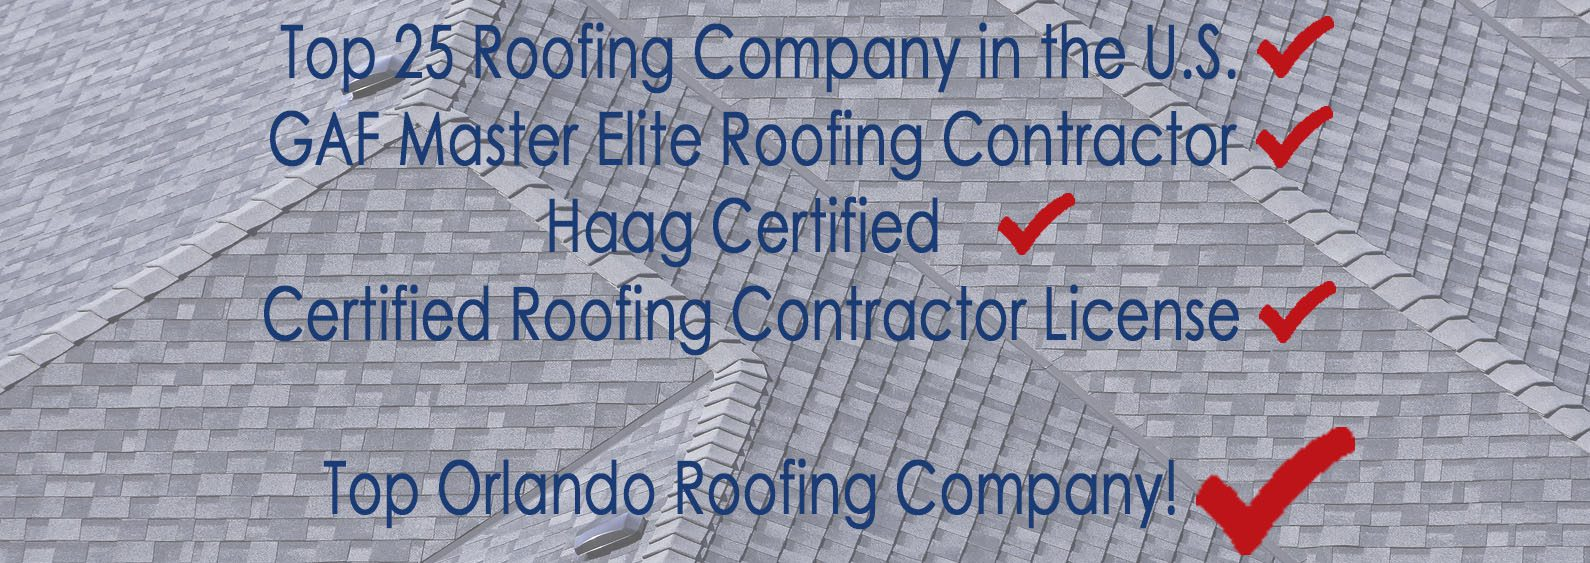 Top US & Orlando Roofing Company